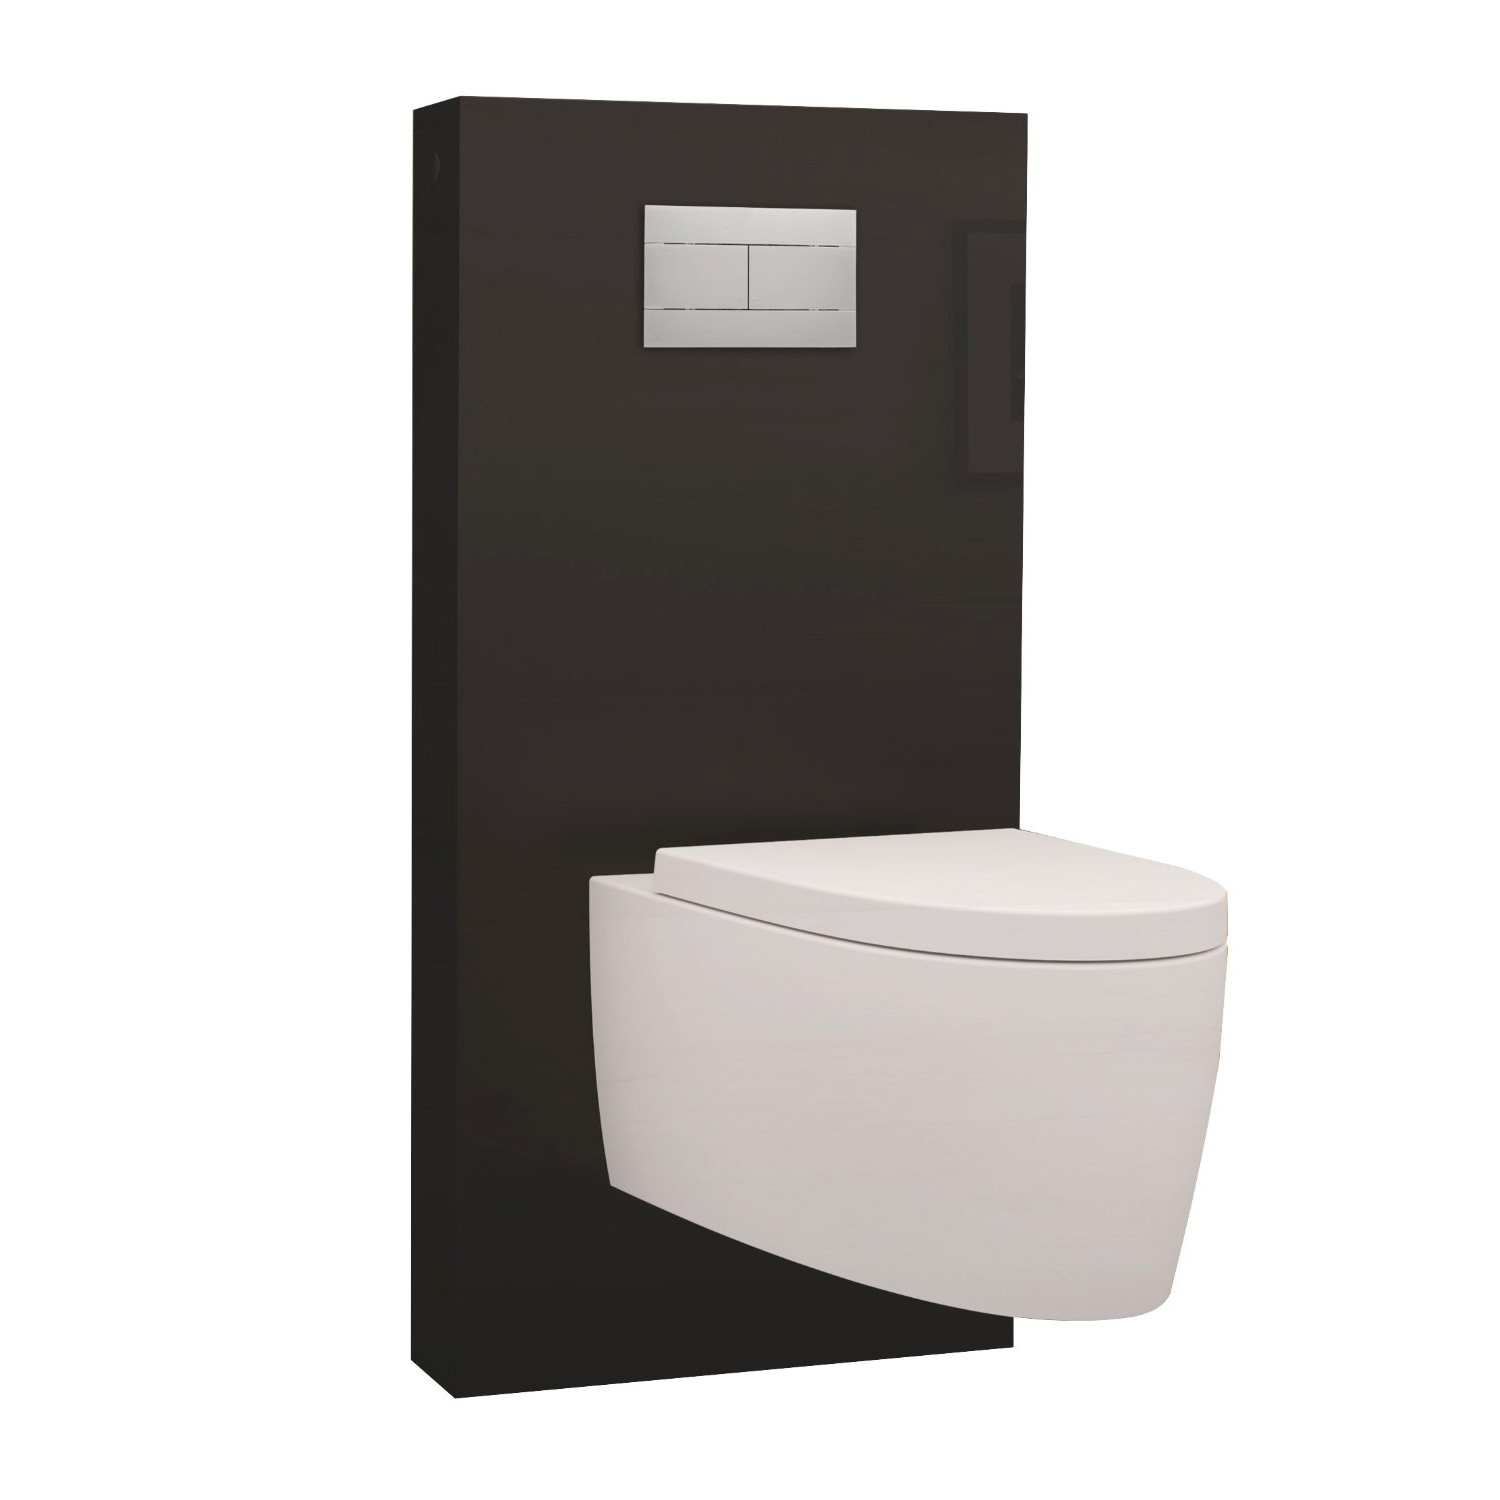 promo wc suspendu geberit simple bati support pack complet wc suspendu bati geberit pro up with. Black Bedroom Furniture Sets. Home Design Ideas